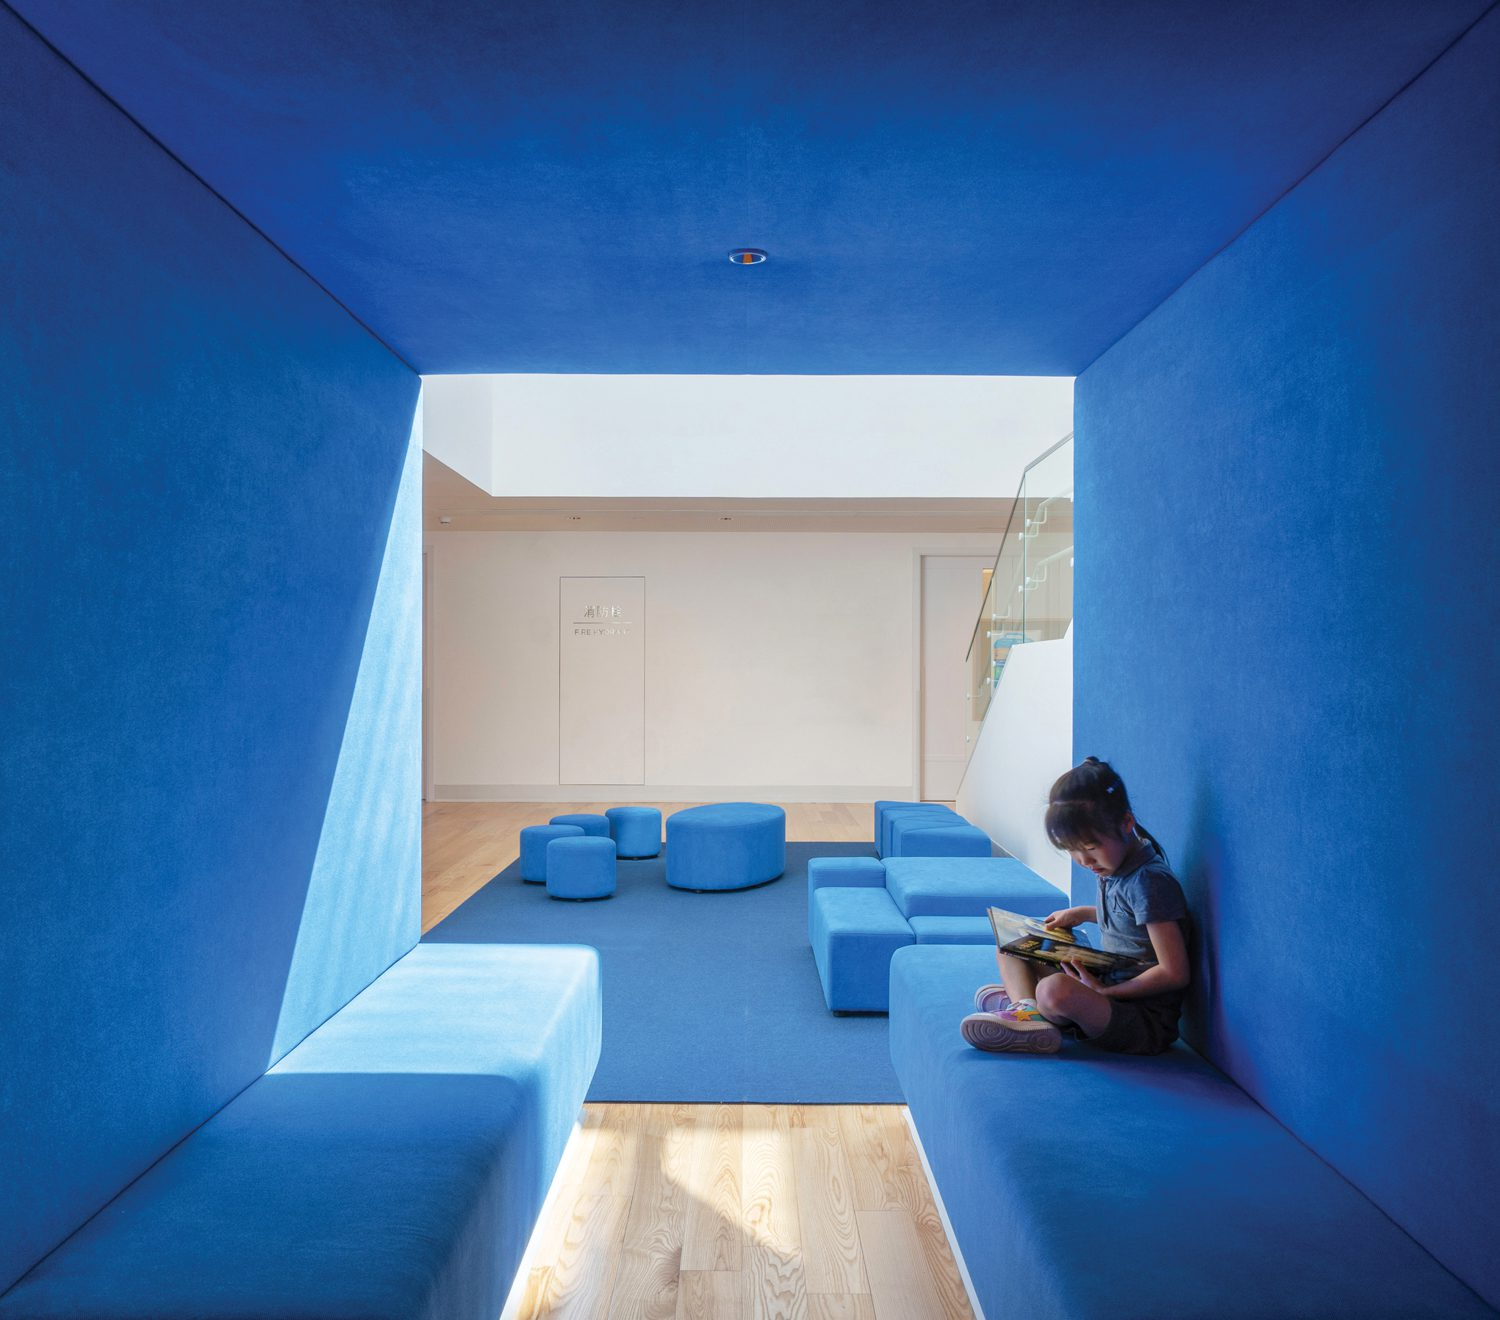 A blue alcove for reading or rest.